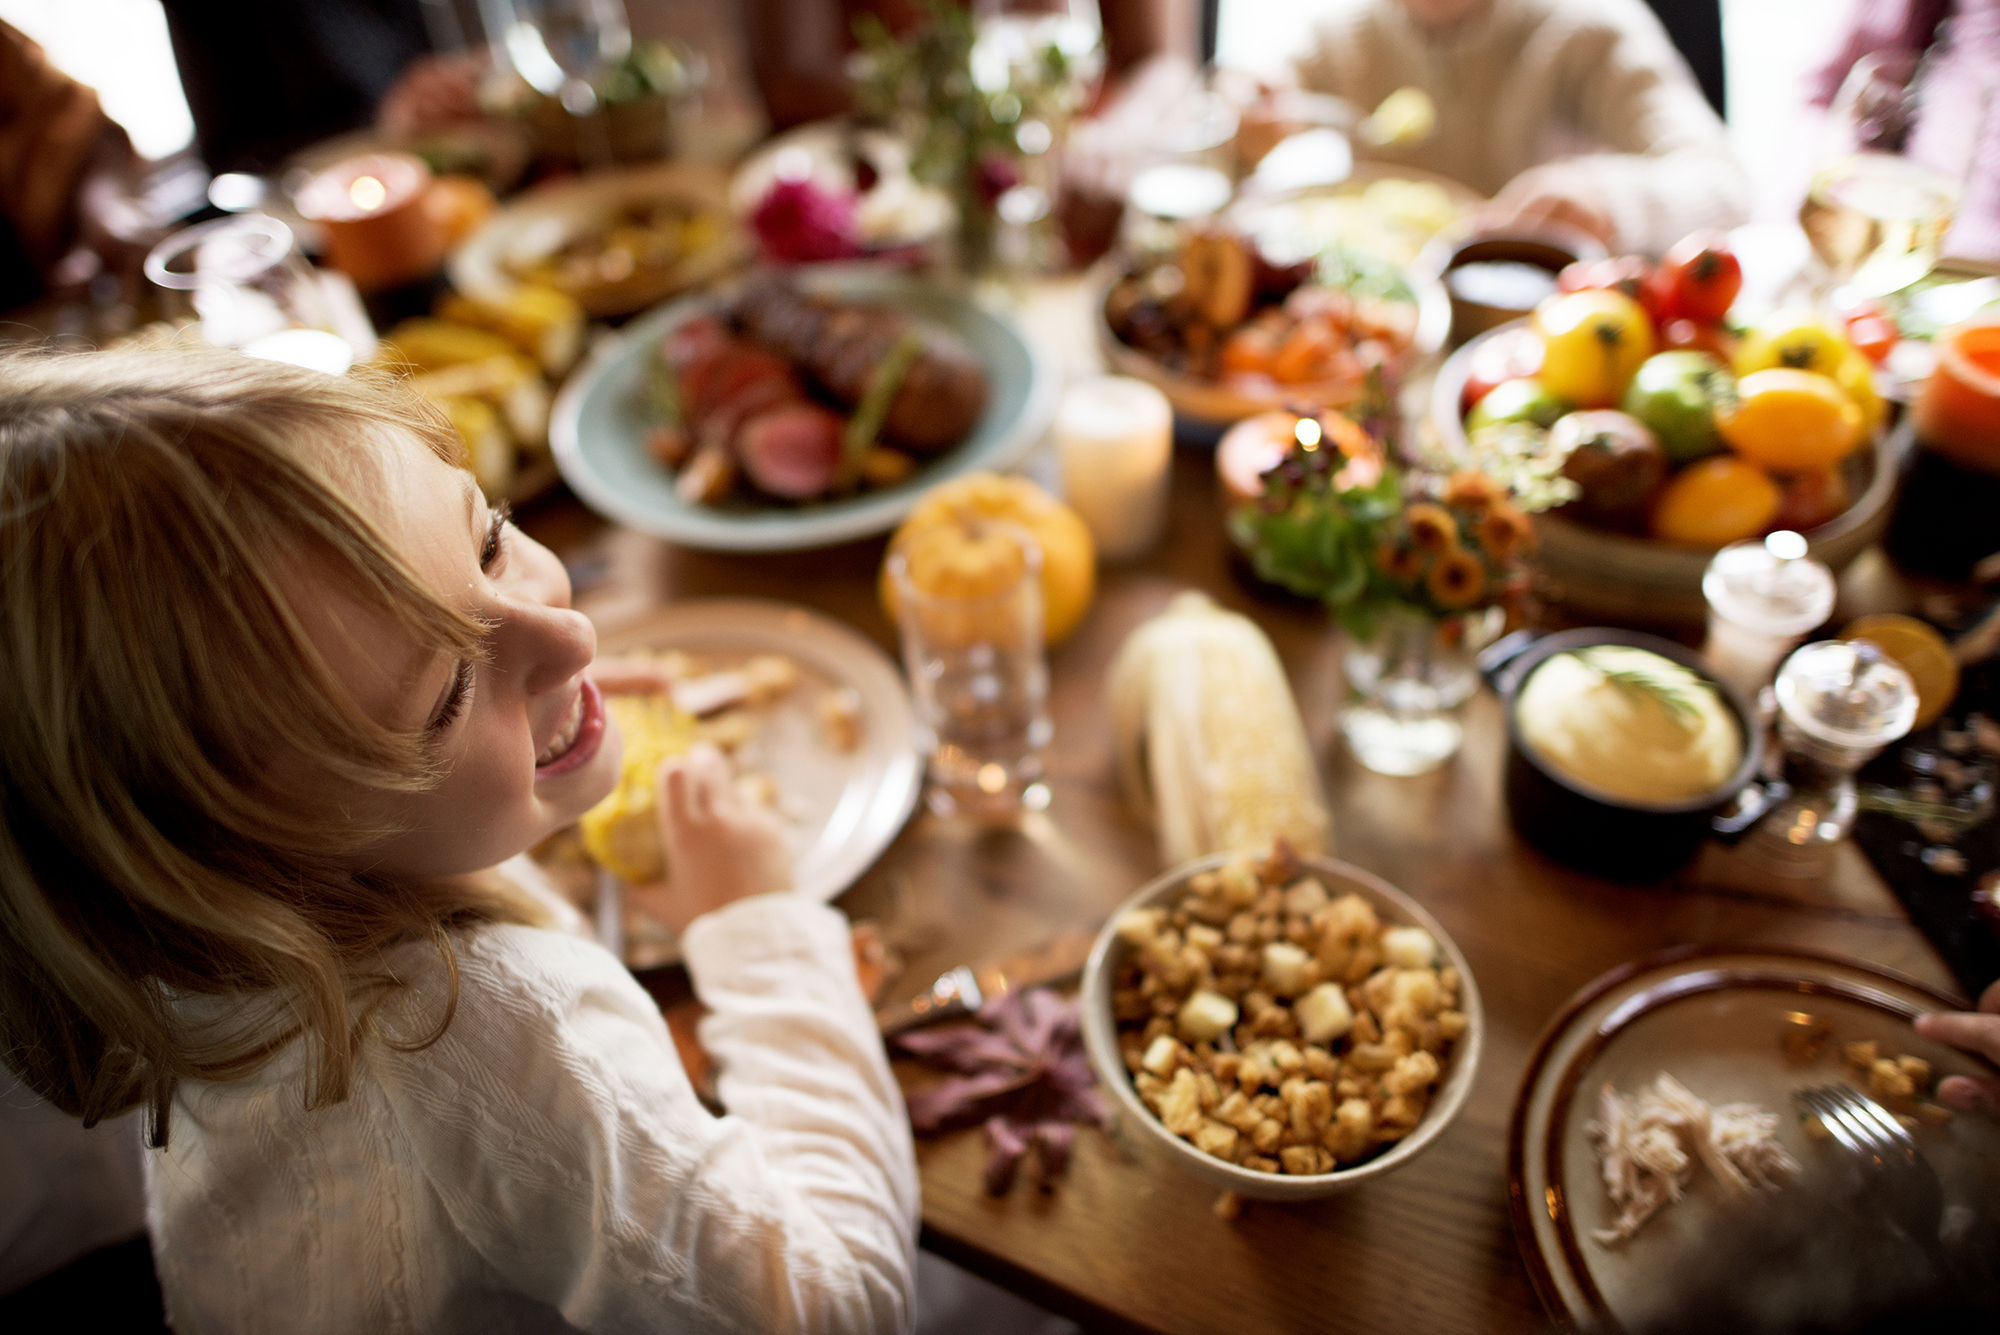 a child enjoying a GAPS diet and anti-inflammatory holiday meal with family. The table is covered in delicious and tasty-looking main dishes and side dishes and everyone is smiling and having fun.